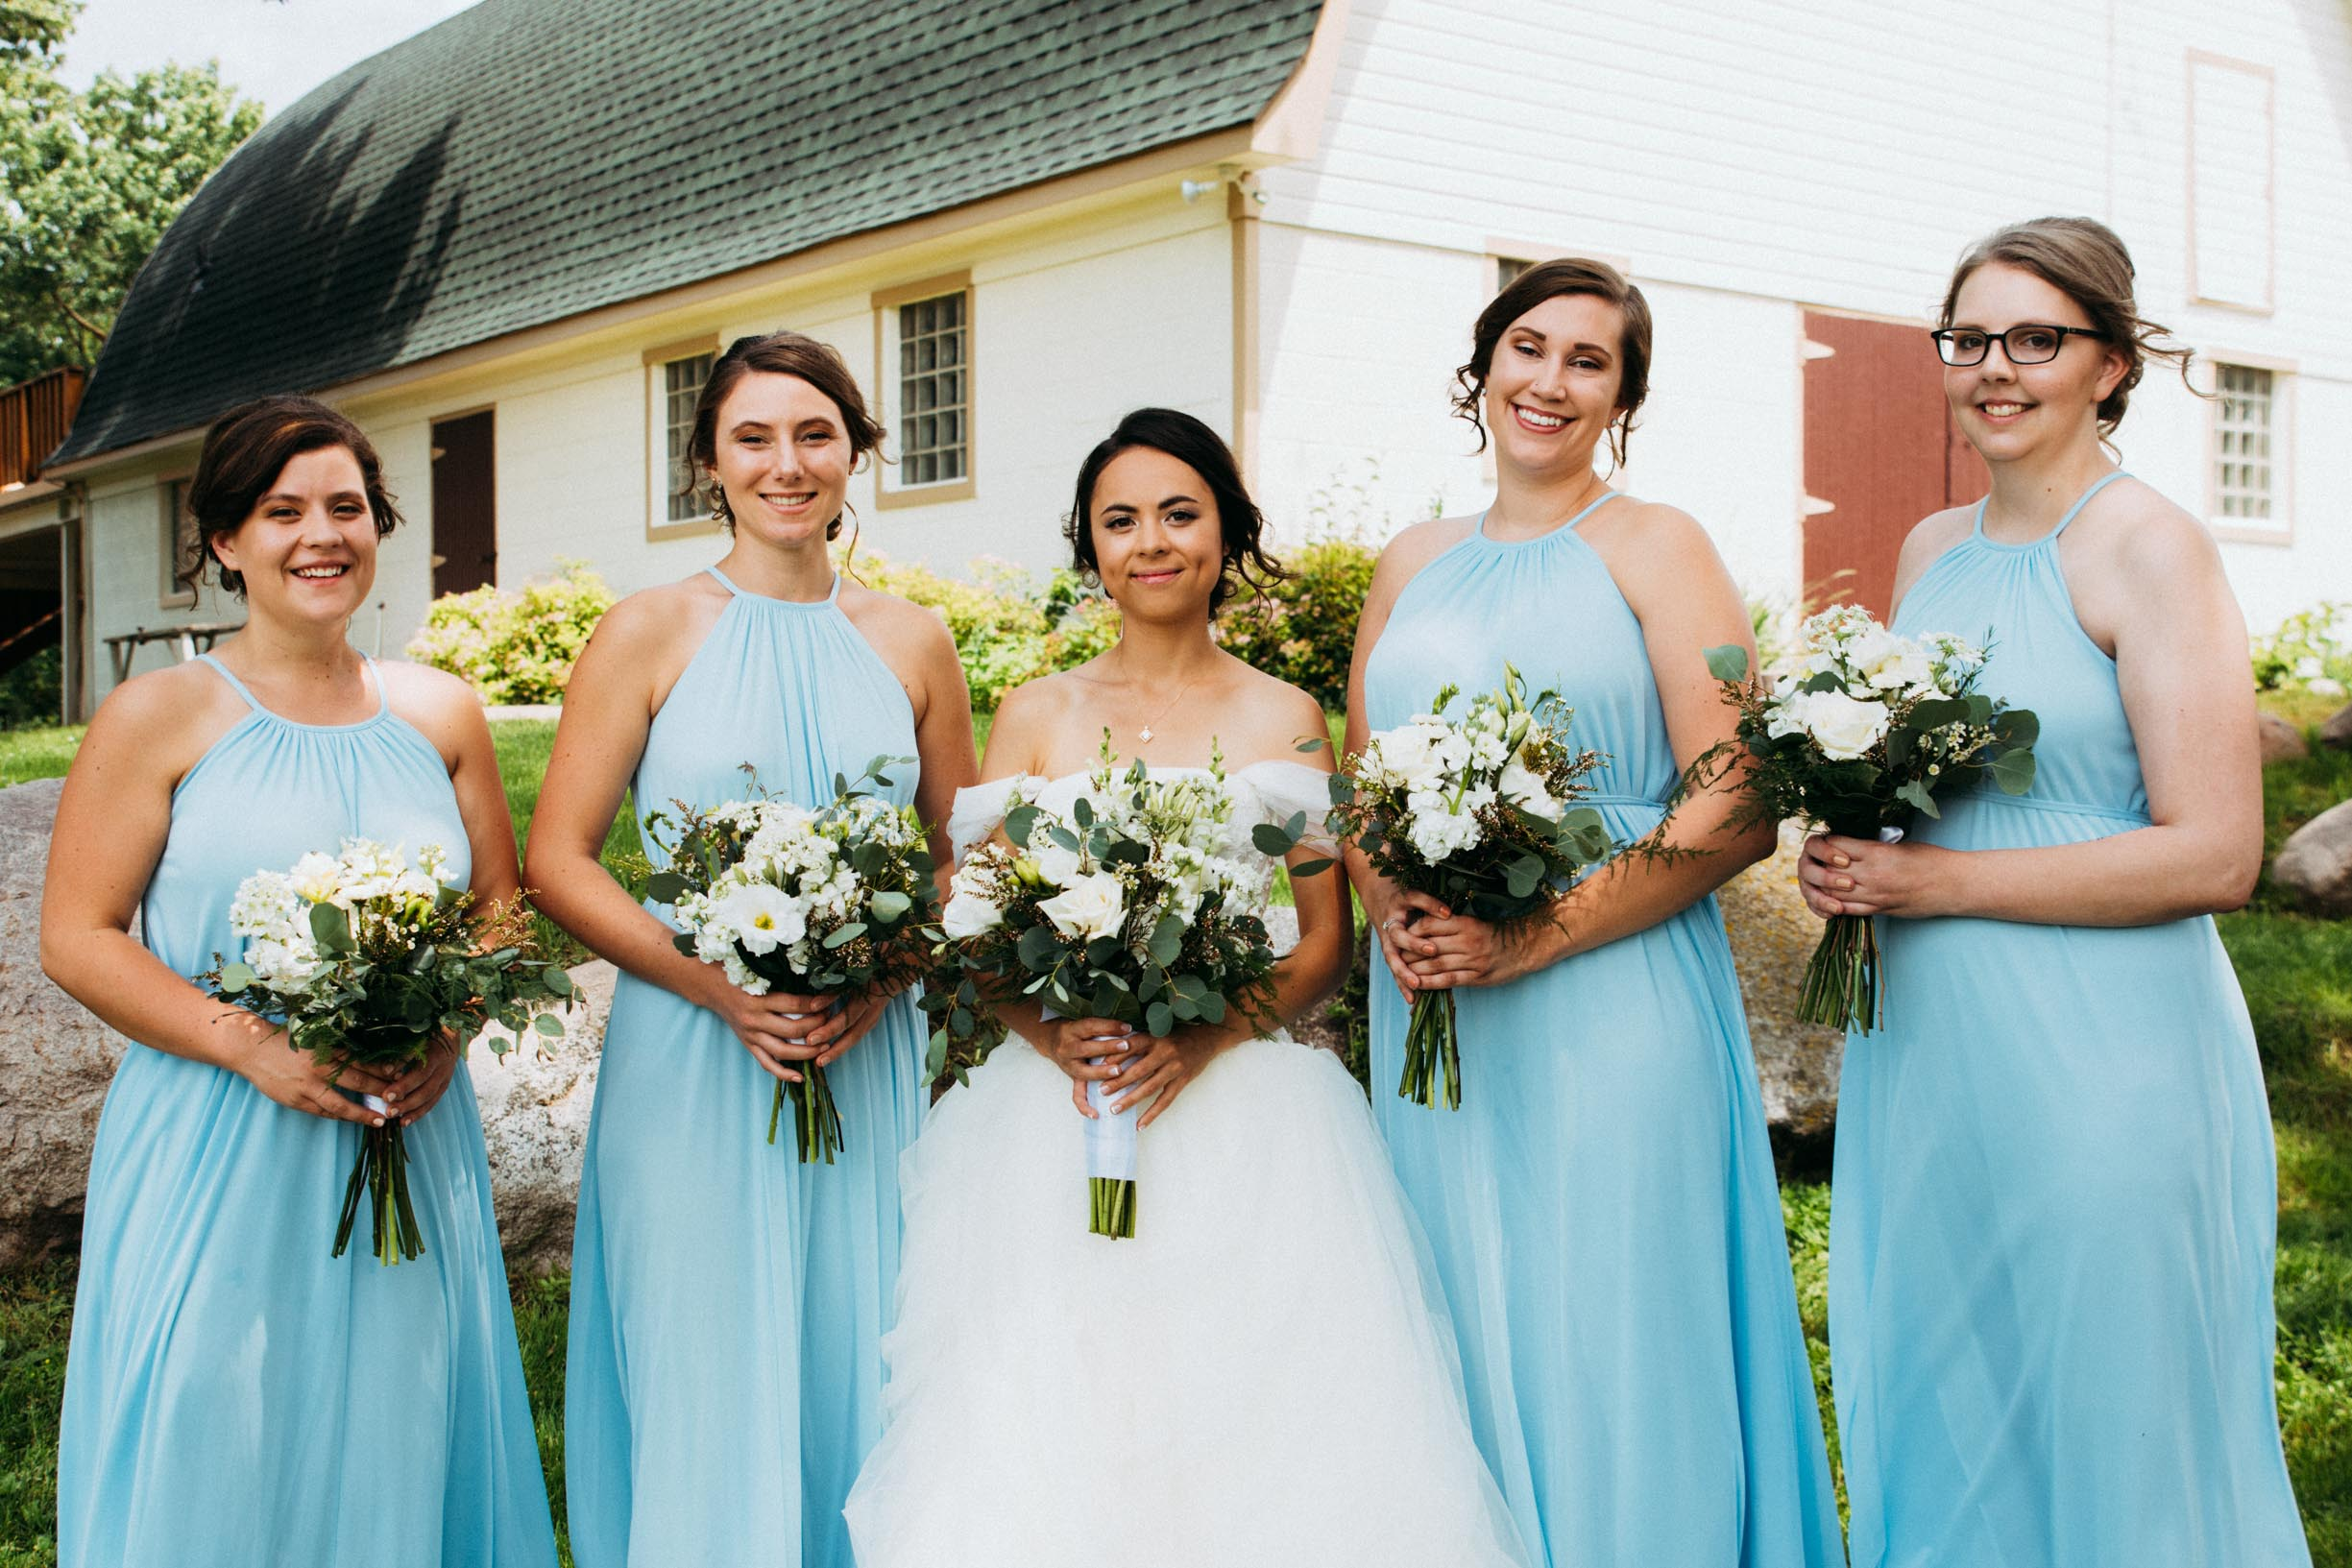 Minnesota_Bridesmaids_Portraits_01.jpg